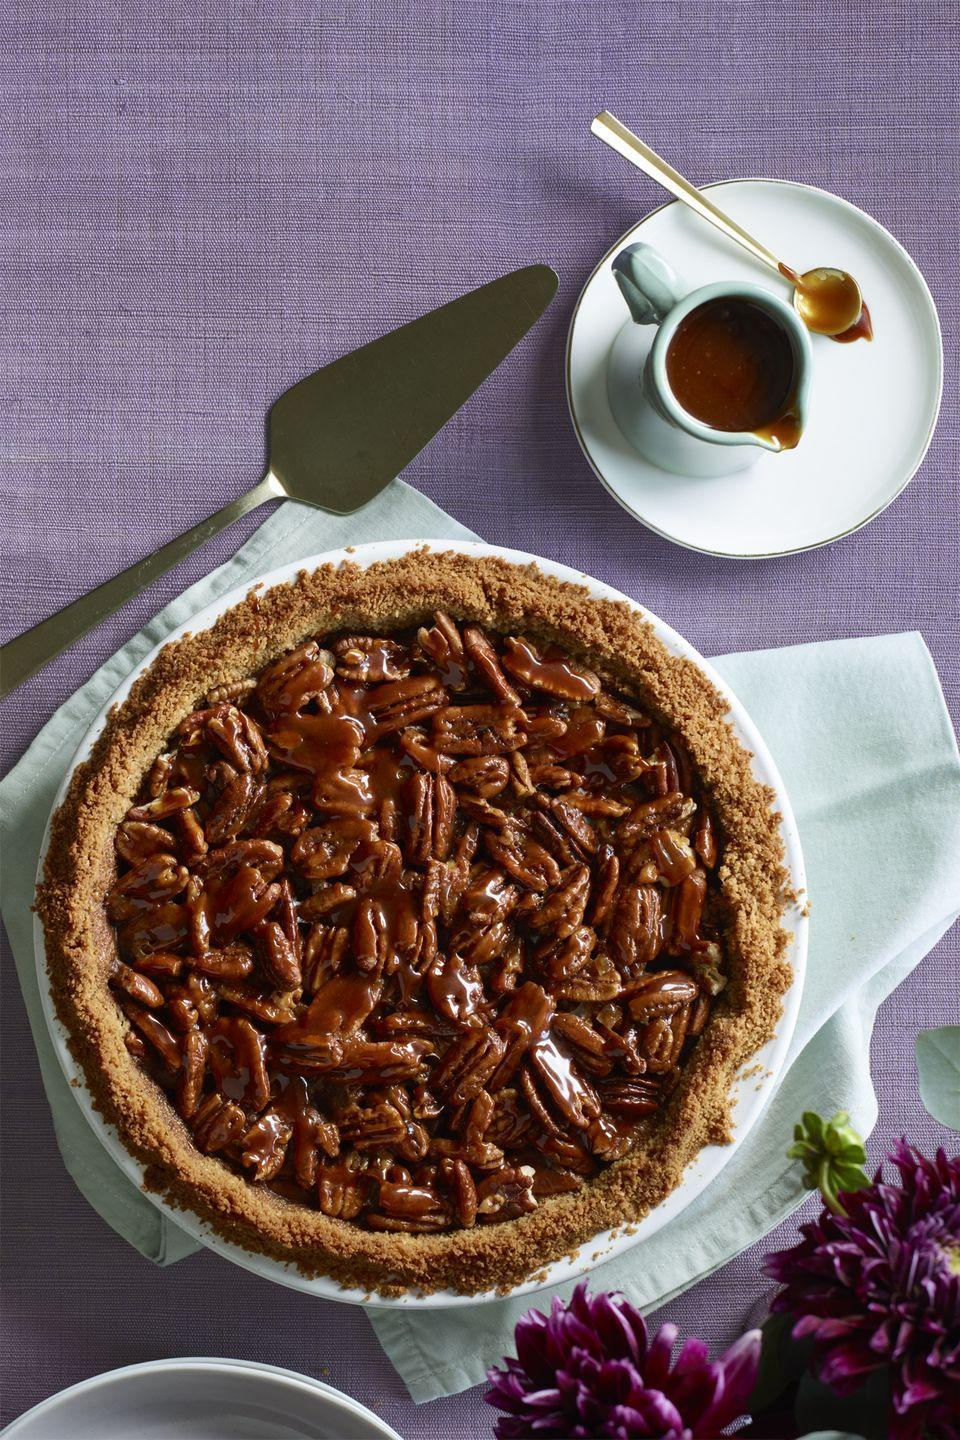 "<p>This chocolaty, nutty pie is sticky-sweet in the best way. </p><p><strong><em><a href=""https://www.womansday.com/food-recipes/food-drinks/recipes/a60505/salted-caramel-pecan-and-chocolate-pie-recipe/"" rel=""nofollow noopener"" target=""_blank"" data-ylk=""slk:Get the Salted Caramel Pecan and Chocolate Pie recipe."" class=""link rapid-noclick-resp"">Get the Salted Caramel Pecan and Chocolate Pie recipe. </a></em></strong></p><p><br></p>"